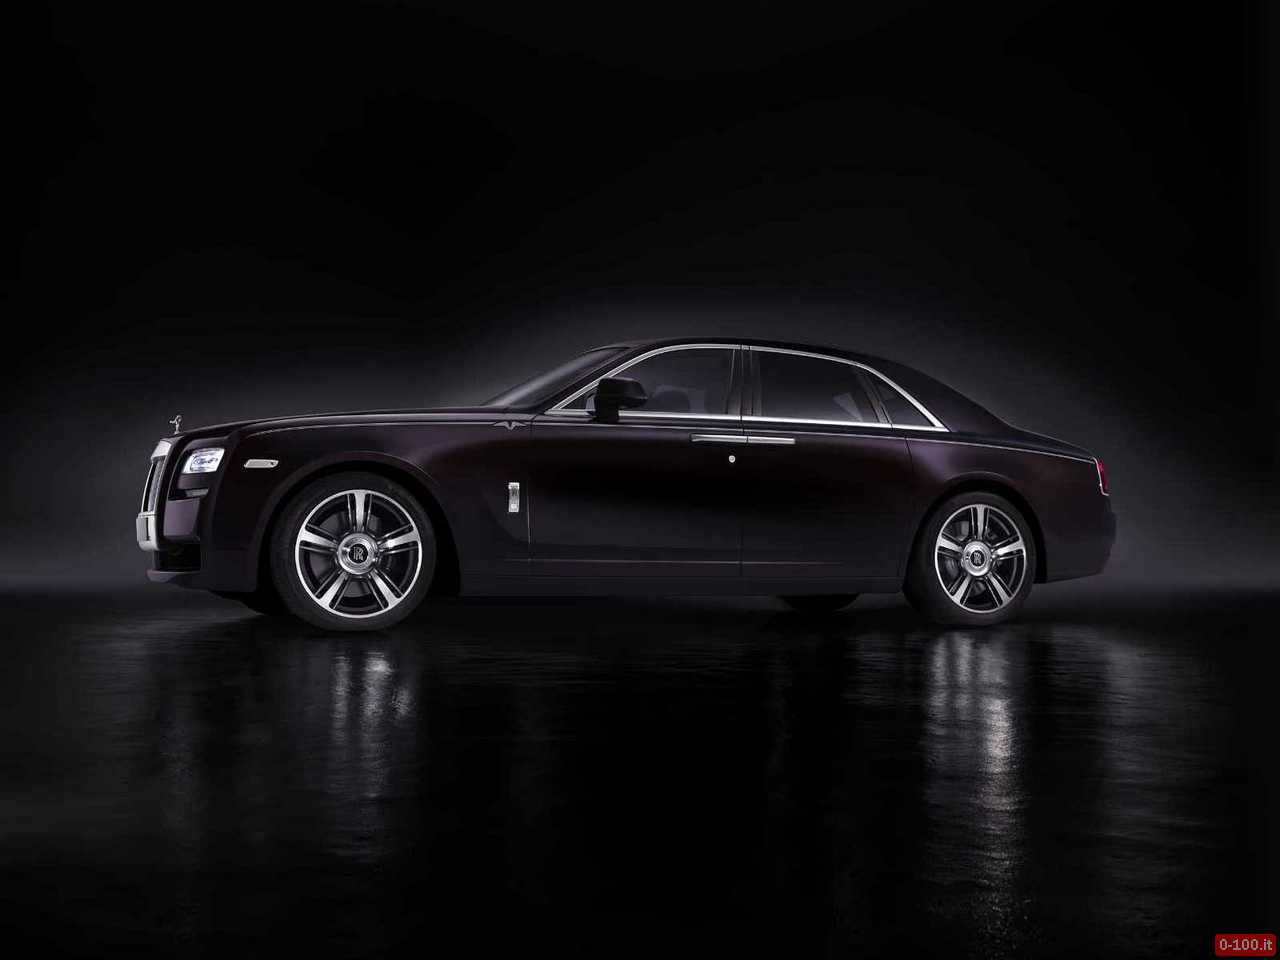 rolls-royce-ghost-e-ghost-lwb-v-specification_0-100_2